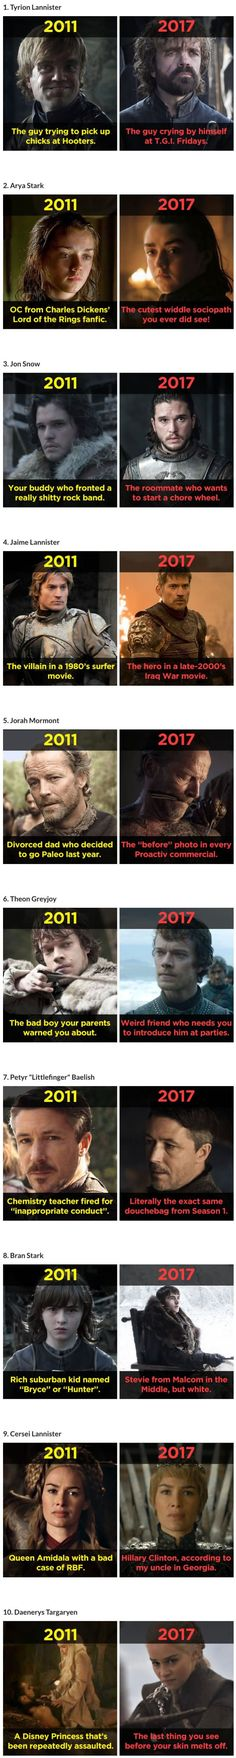 Game of Thrones then and now.